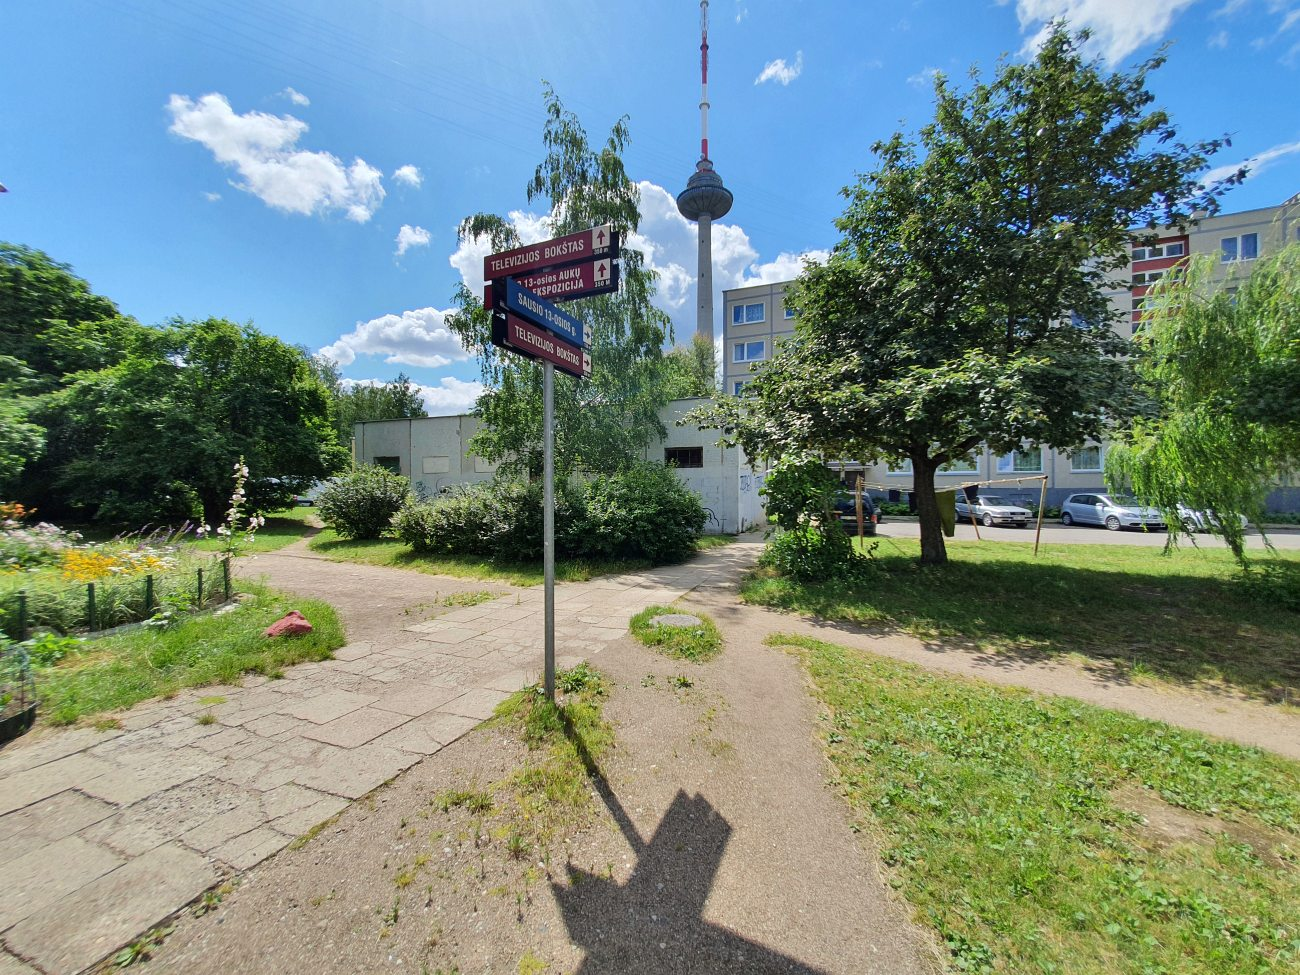 sign-pointing-to-vilnius-tv-tower-museum-and-restaurant